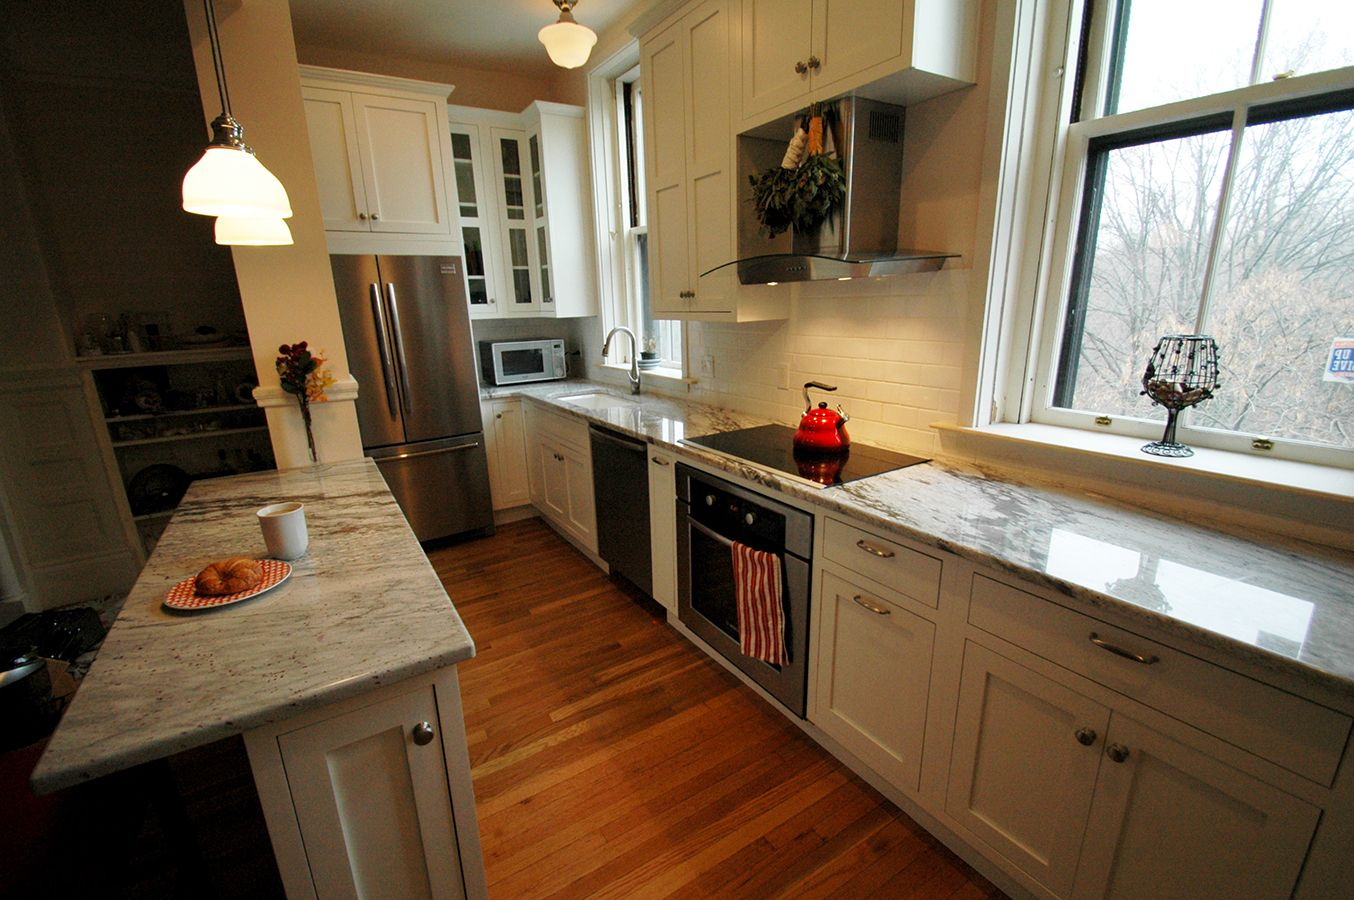 Galley Kitchen Remodel Ideas Pictures giving you a kitchen you will love to cook in! call our santa